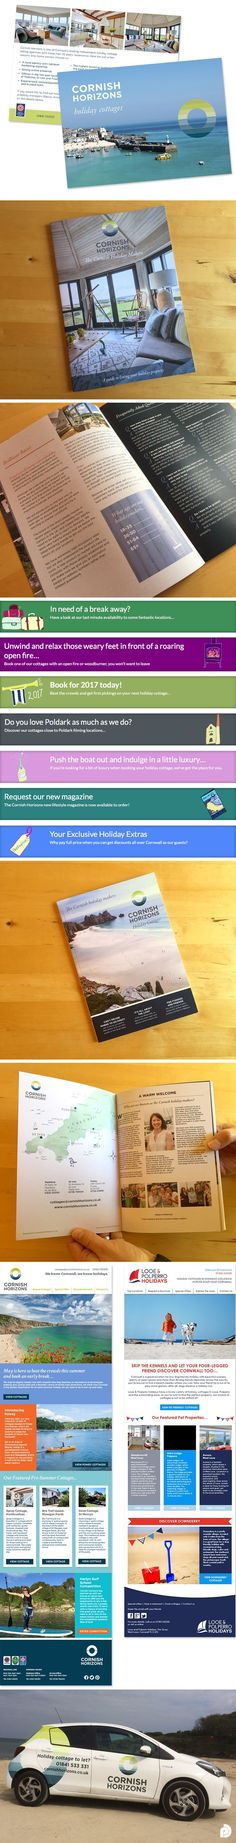 Here is just a taster of the work we have been doing for holiday cottage company Cornish Horizons. From flyer design, to creating their magazines and brochures. We have also sign written cars, illustrated web banners and designed their direct mail newsletters!